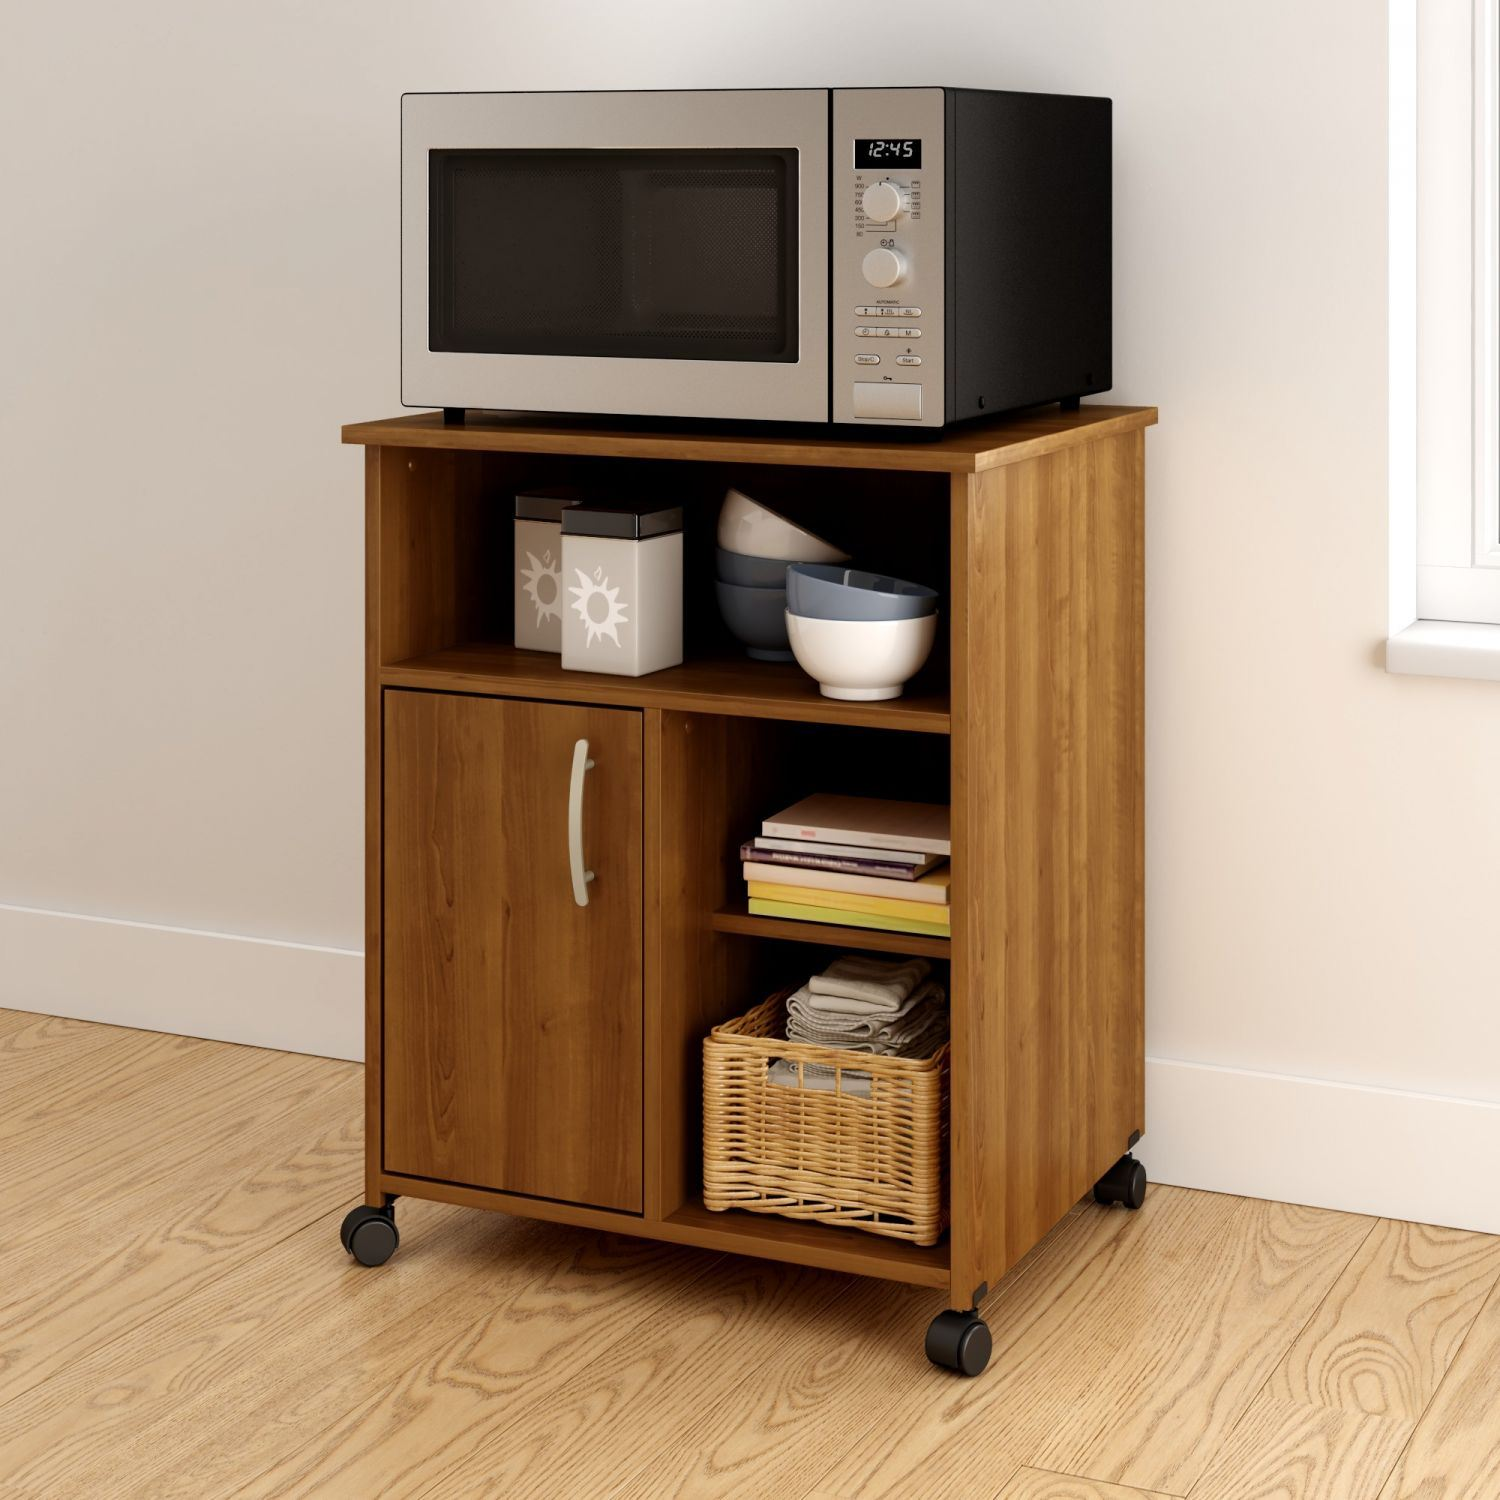 Picture of Axess Microwave Cart with Storage on Wheels